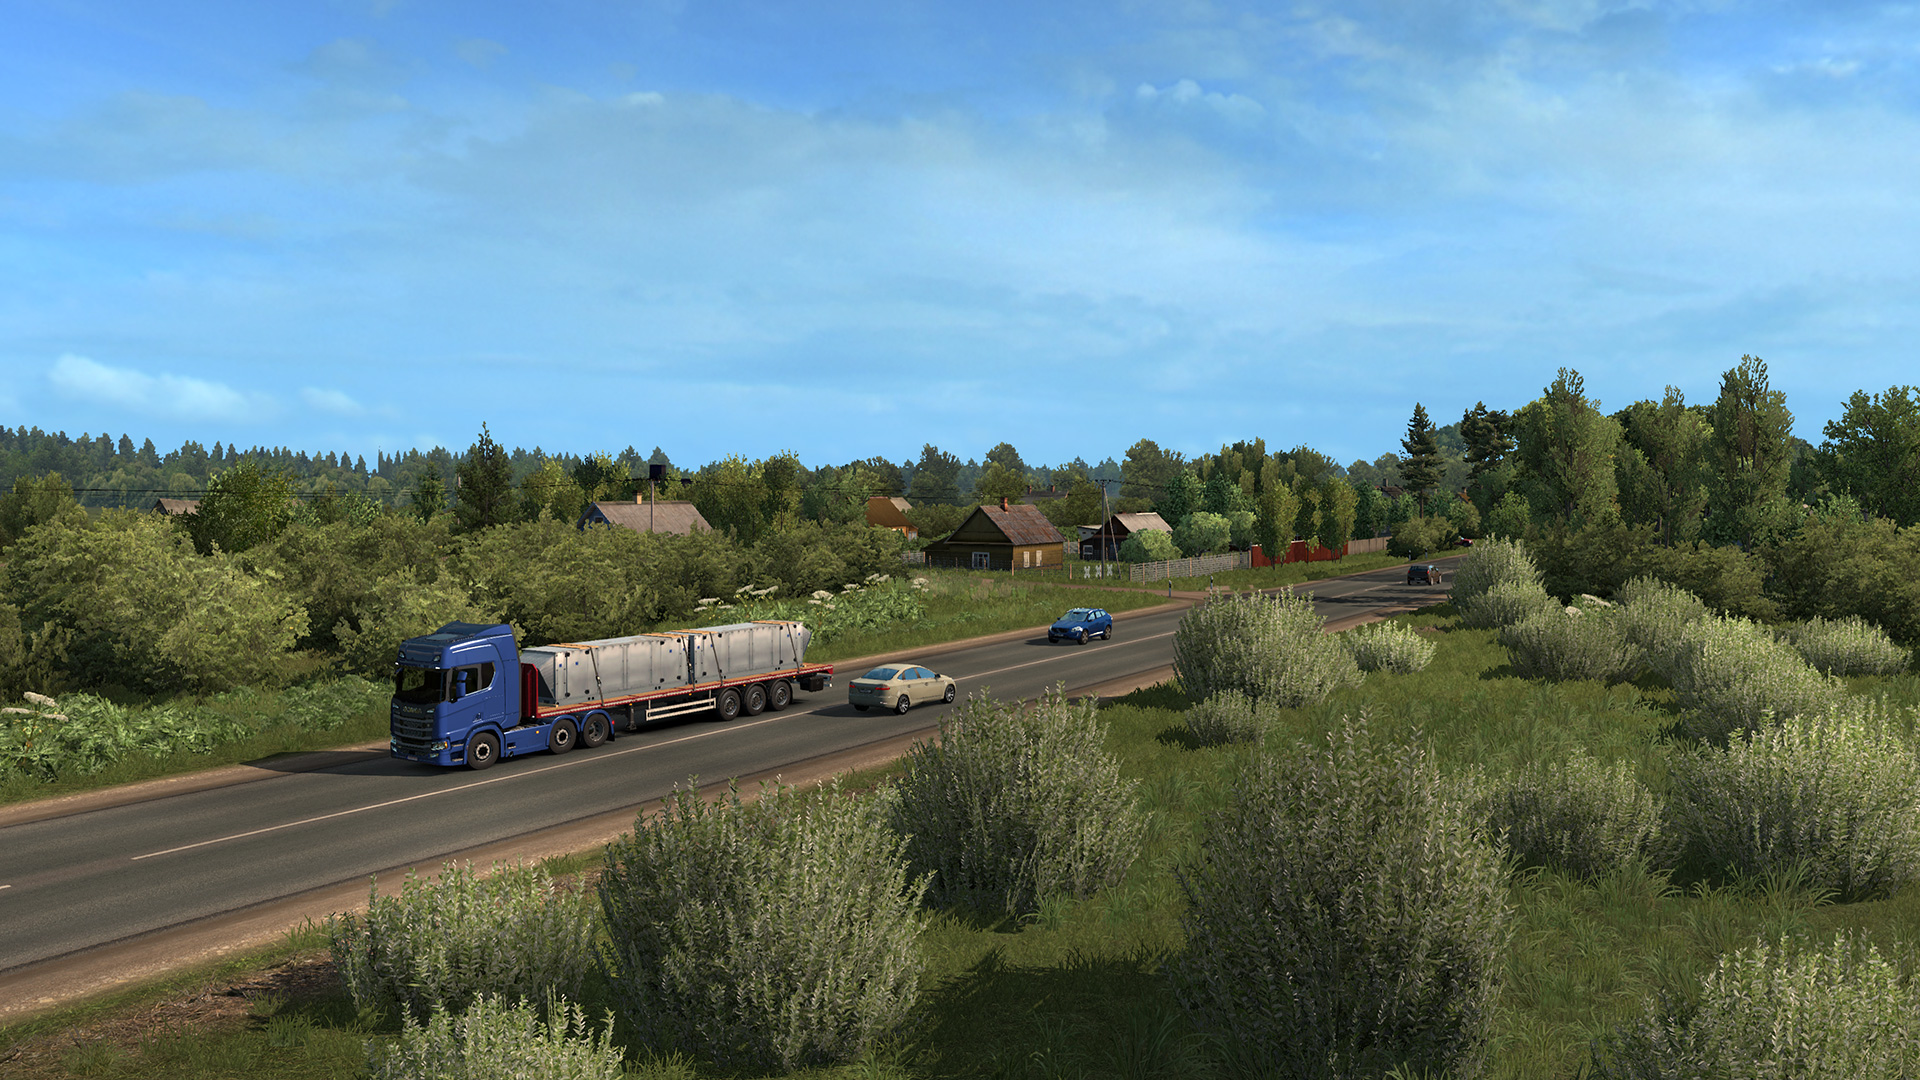 3384-euro-truck-simulator-2-beyond-the-baltic-sea-gallery-11_1